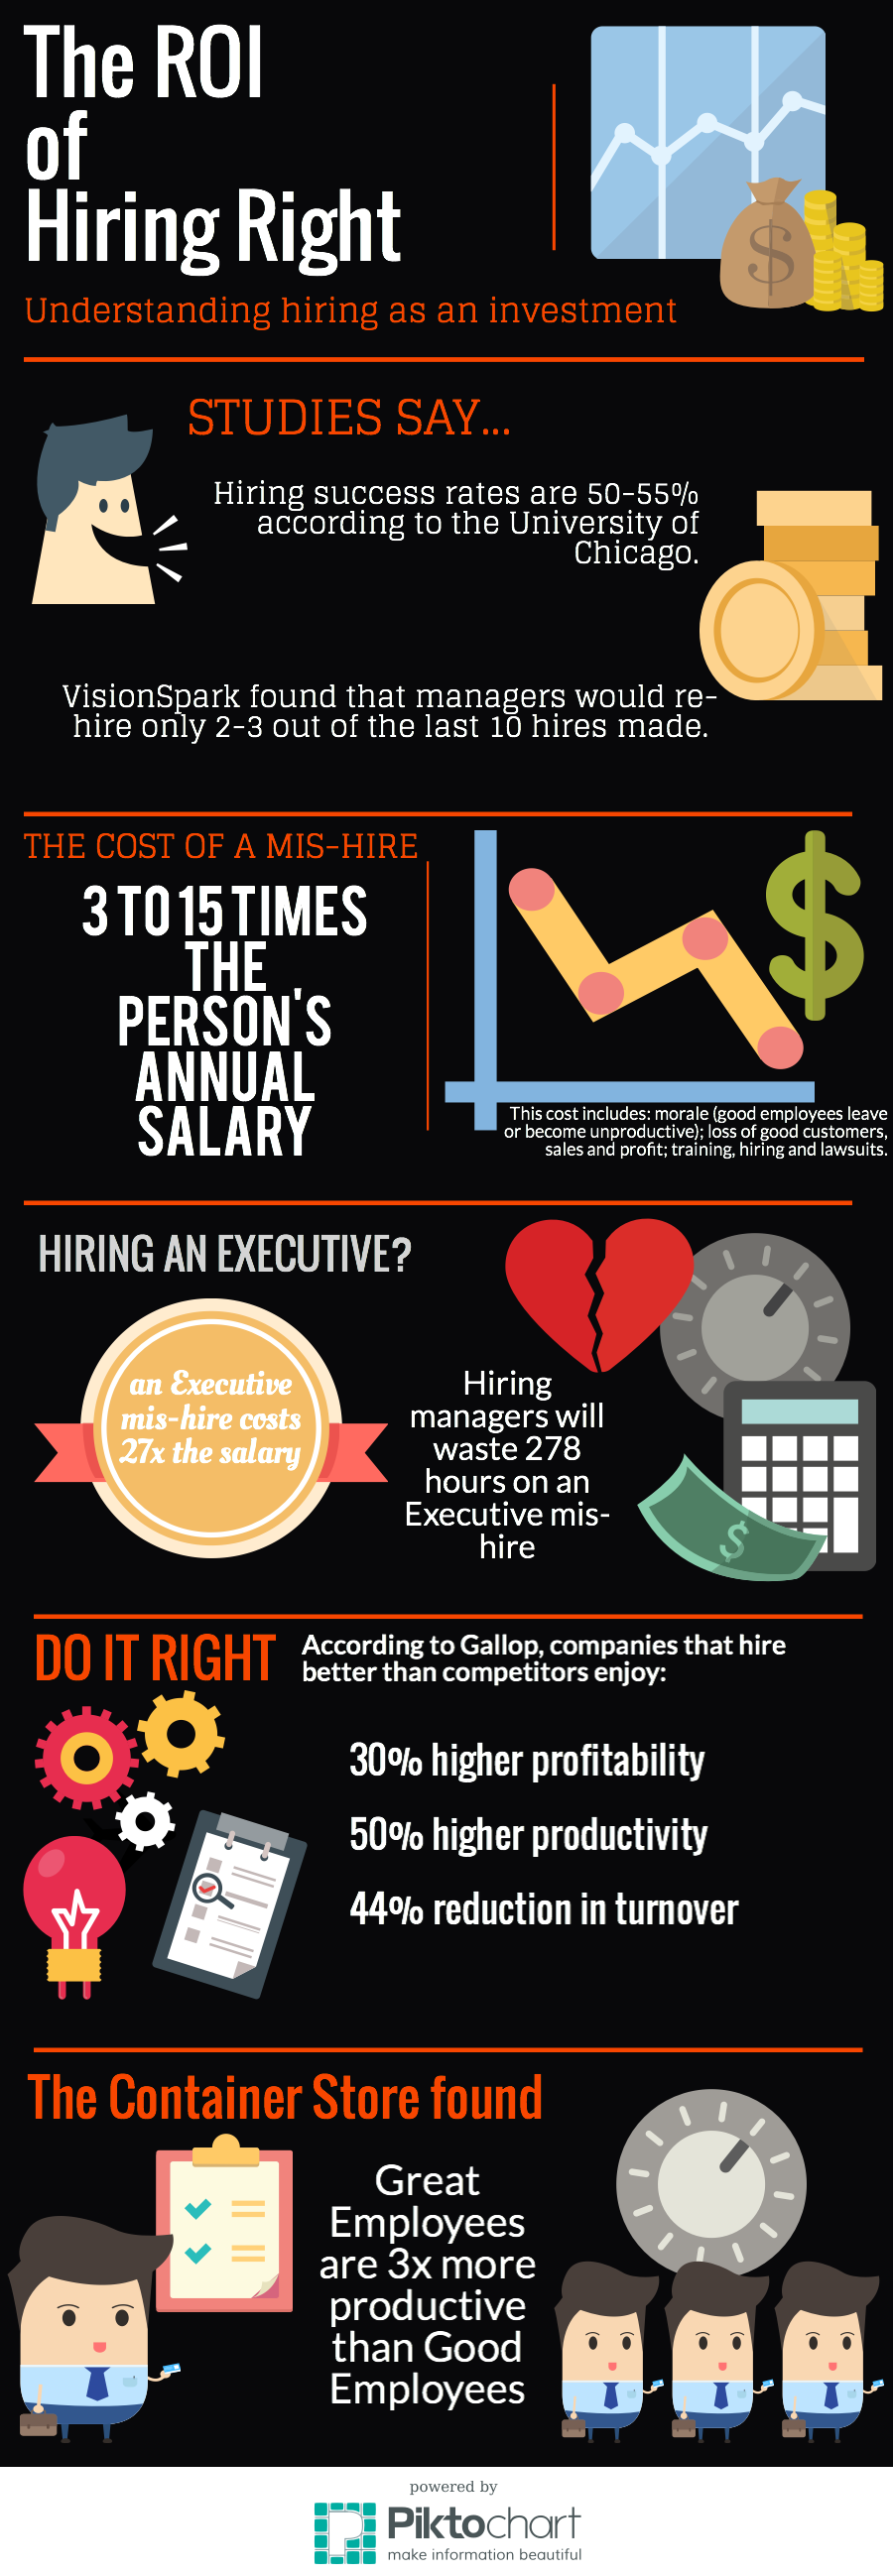 ROI-of-Hiring-Right1